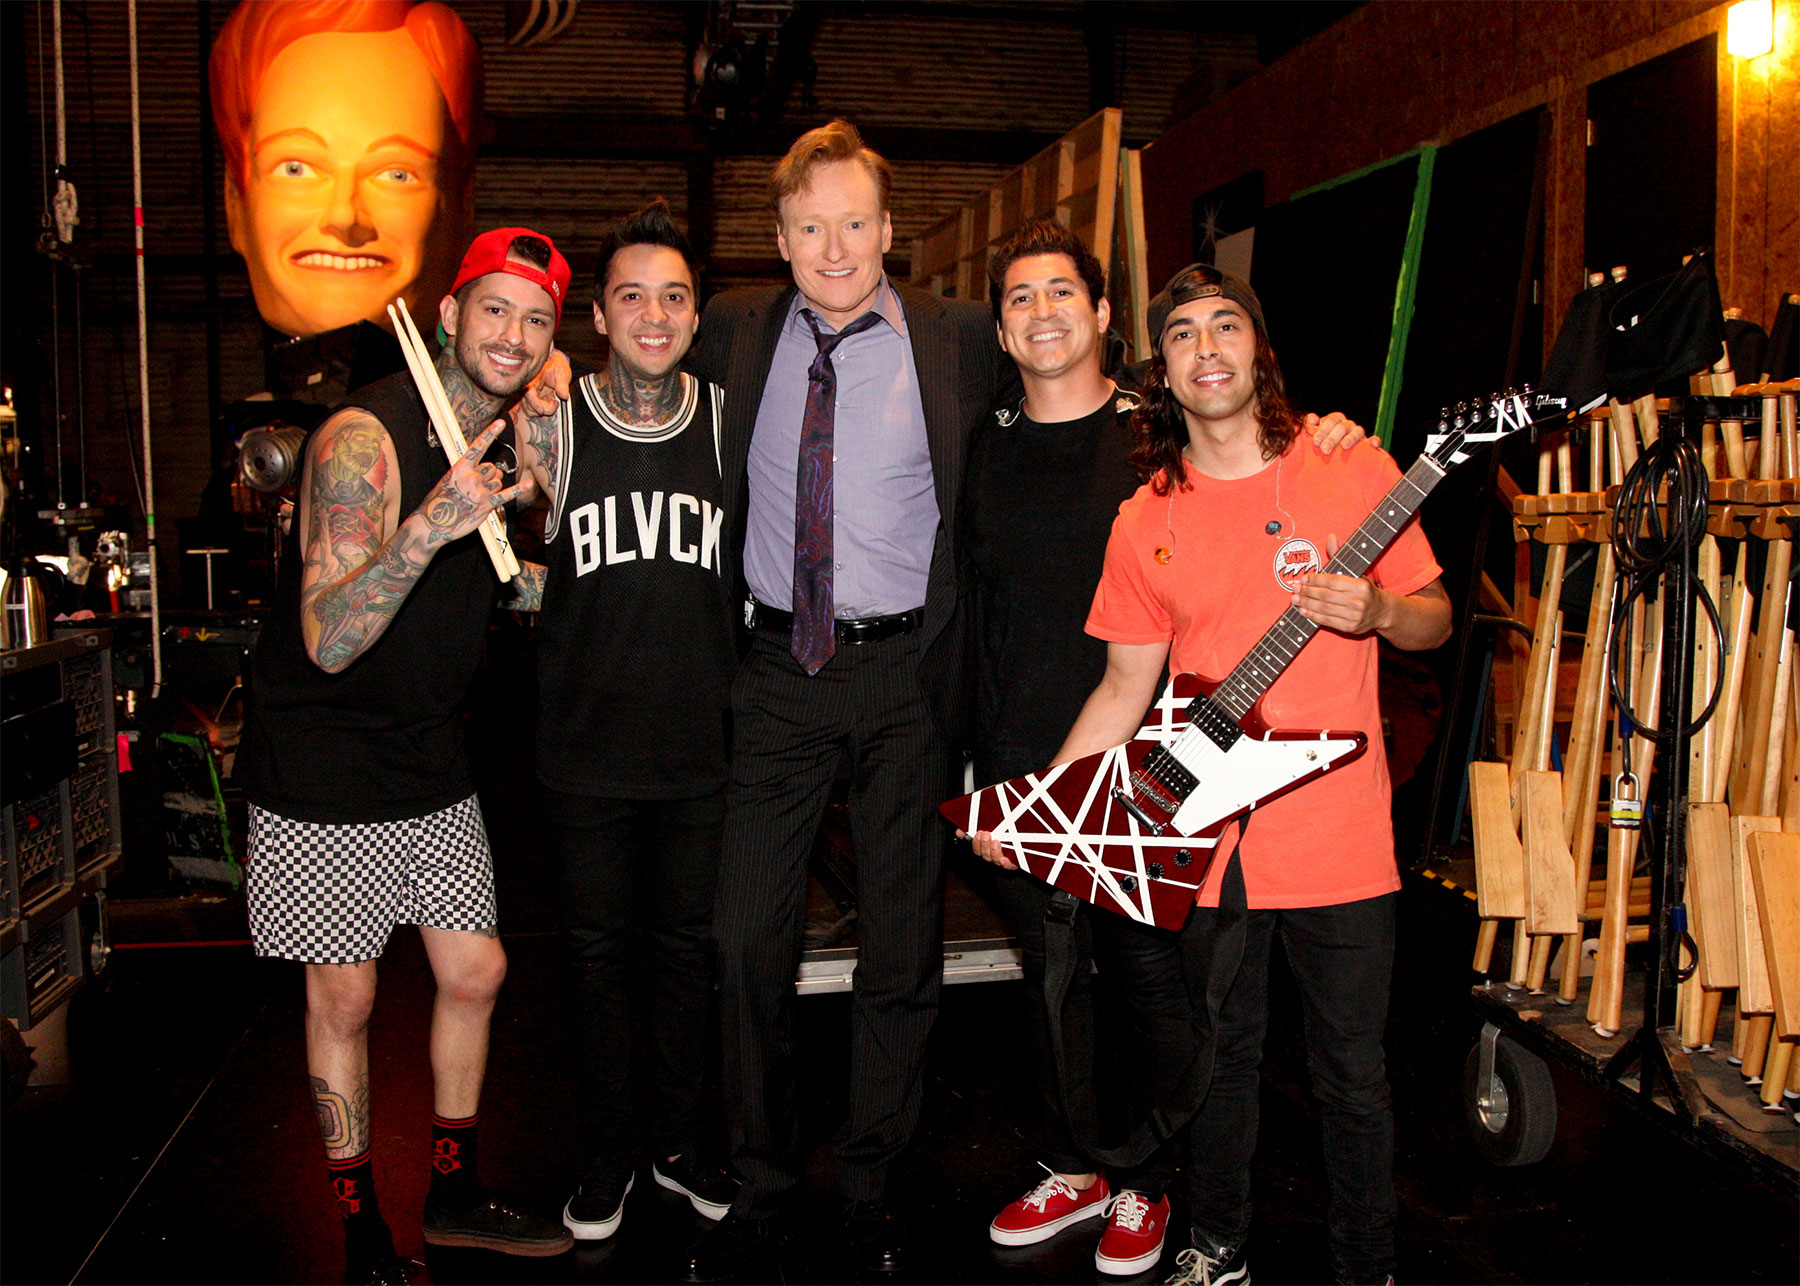 Pierce the Veil on the set of Conan O'Brien; Photo by Team Coco